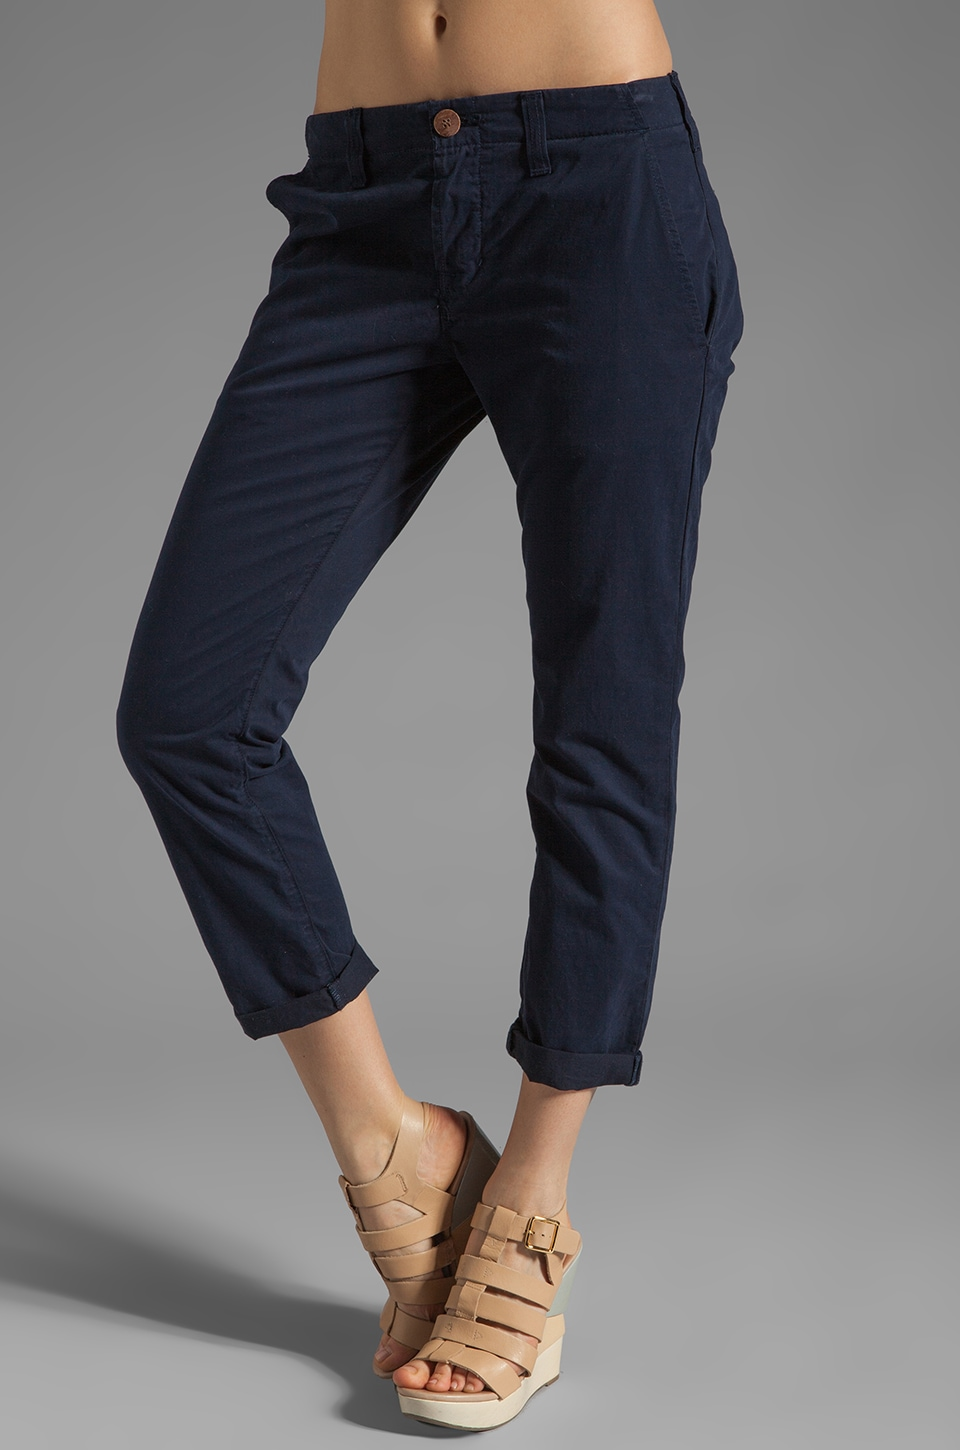 J Brand Fitted Chino in Nautical Blue